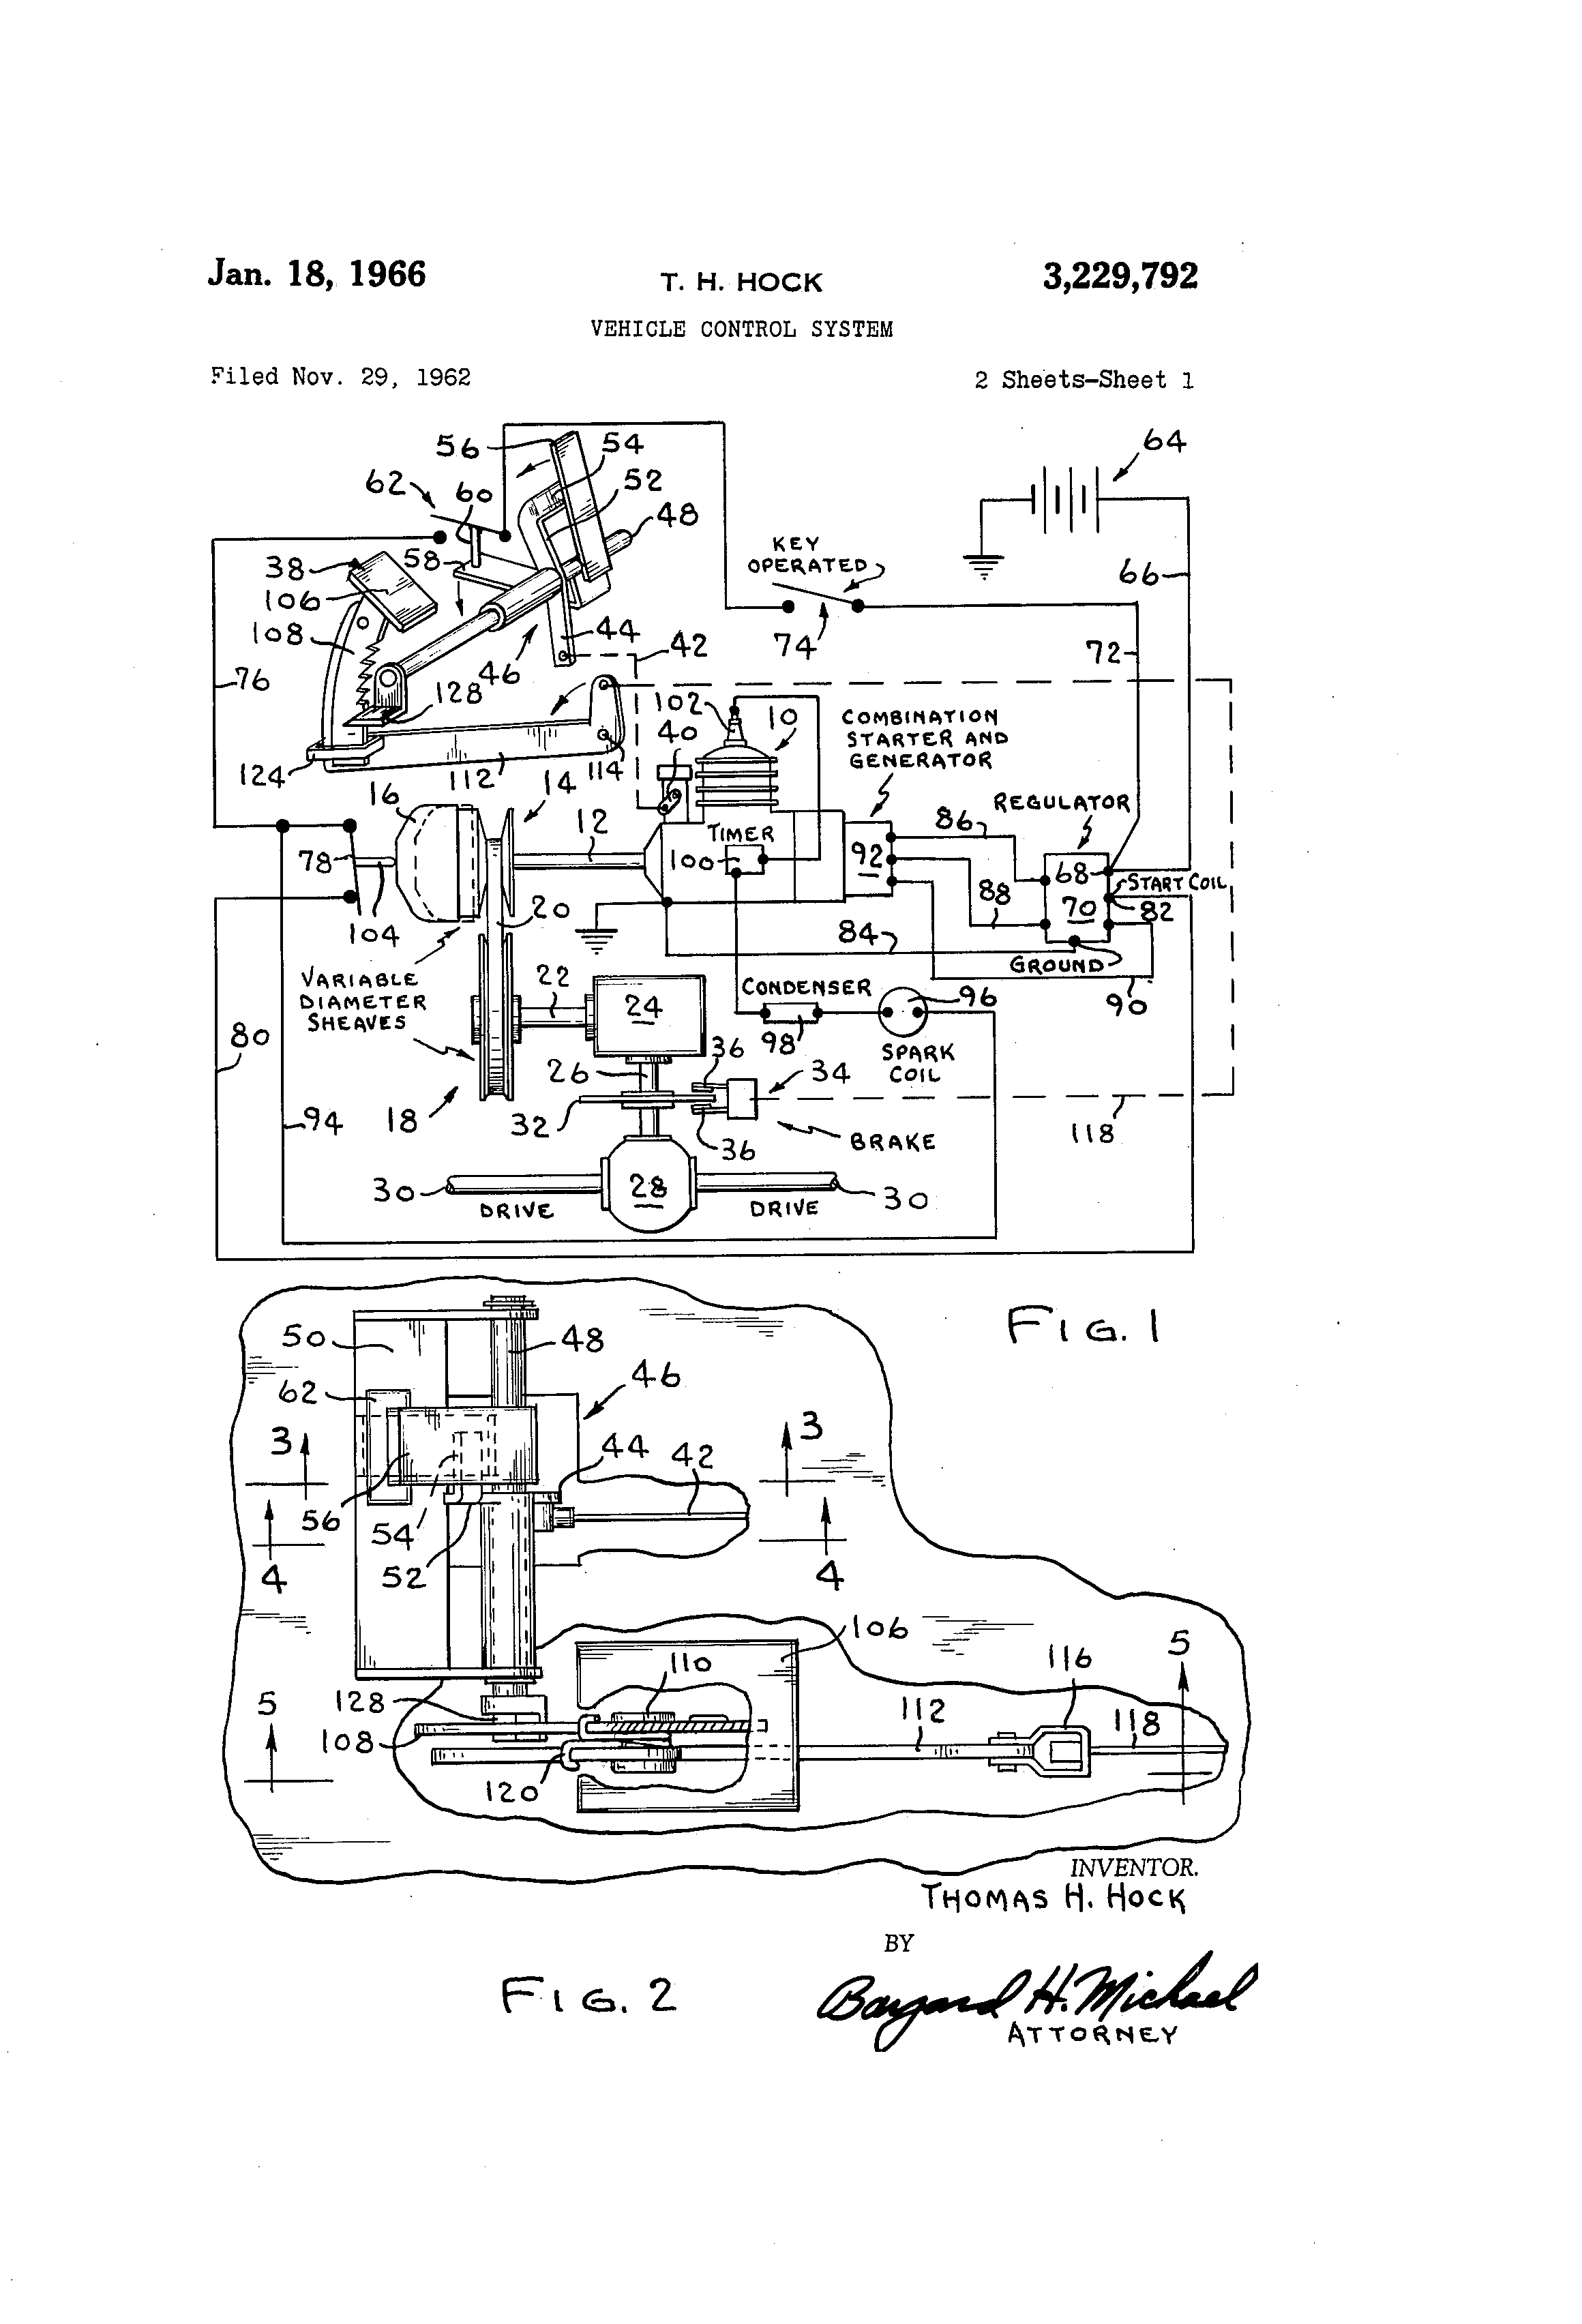 patent us3229792 - vehicle control system